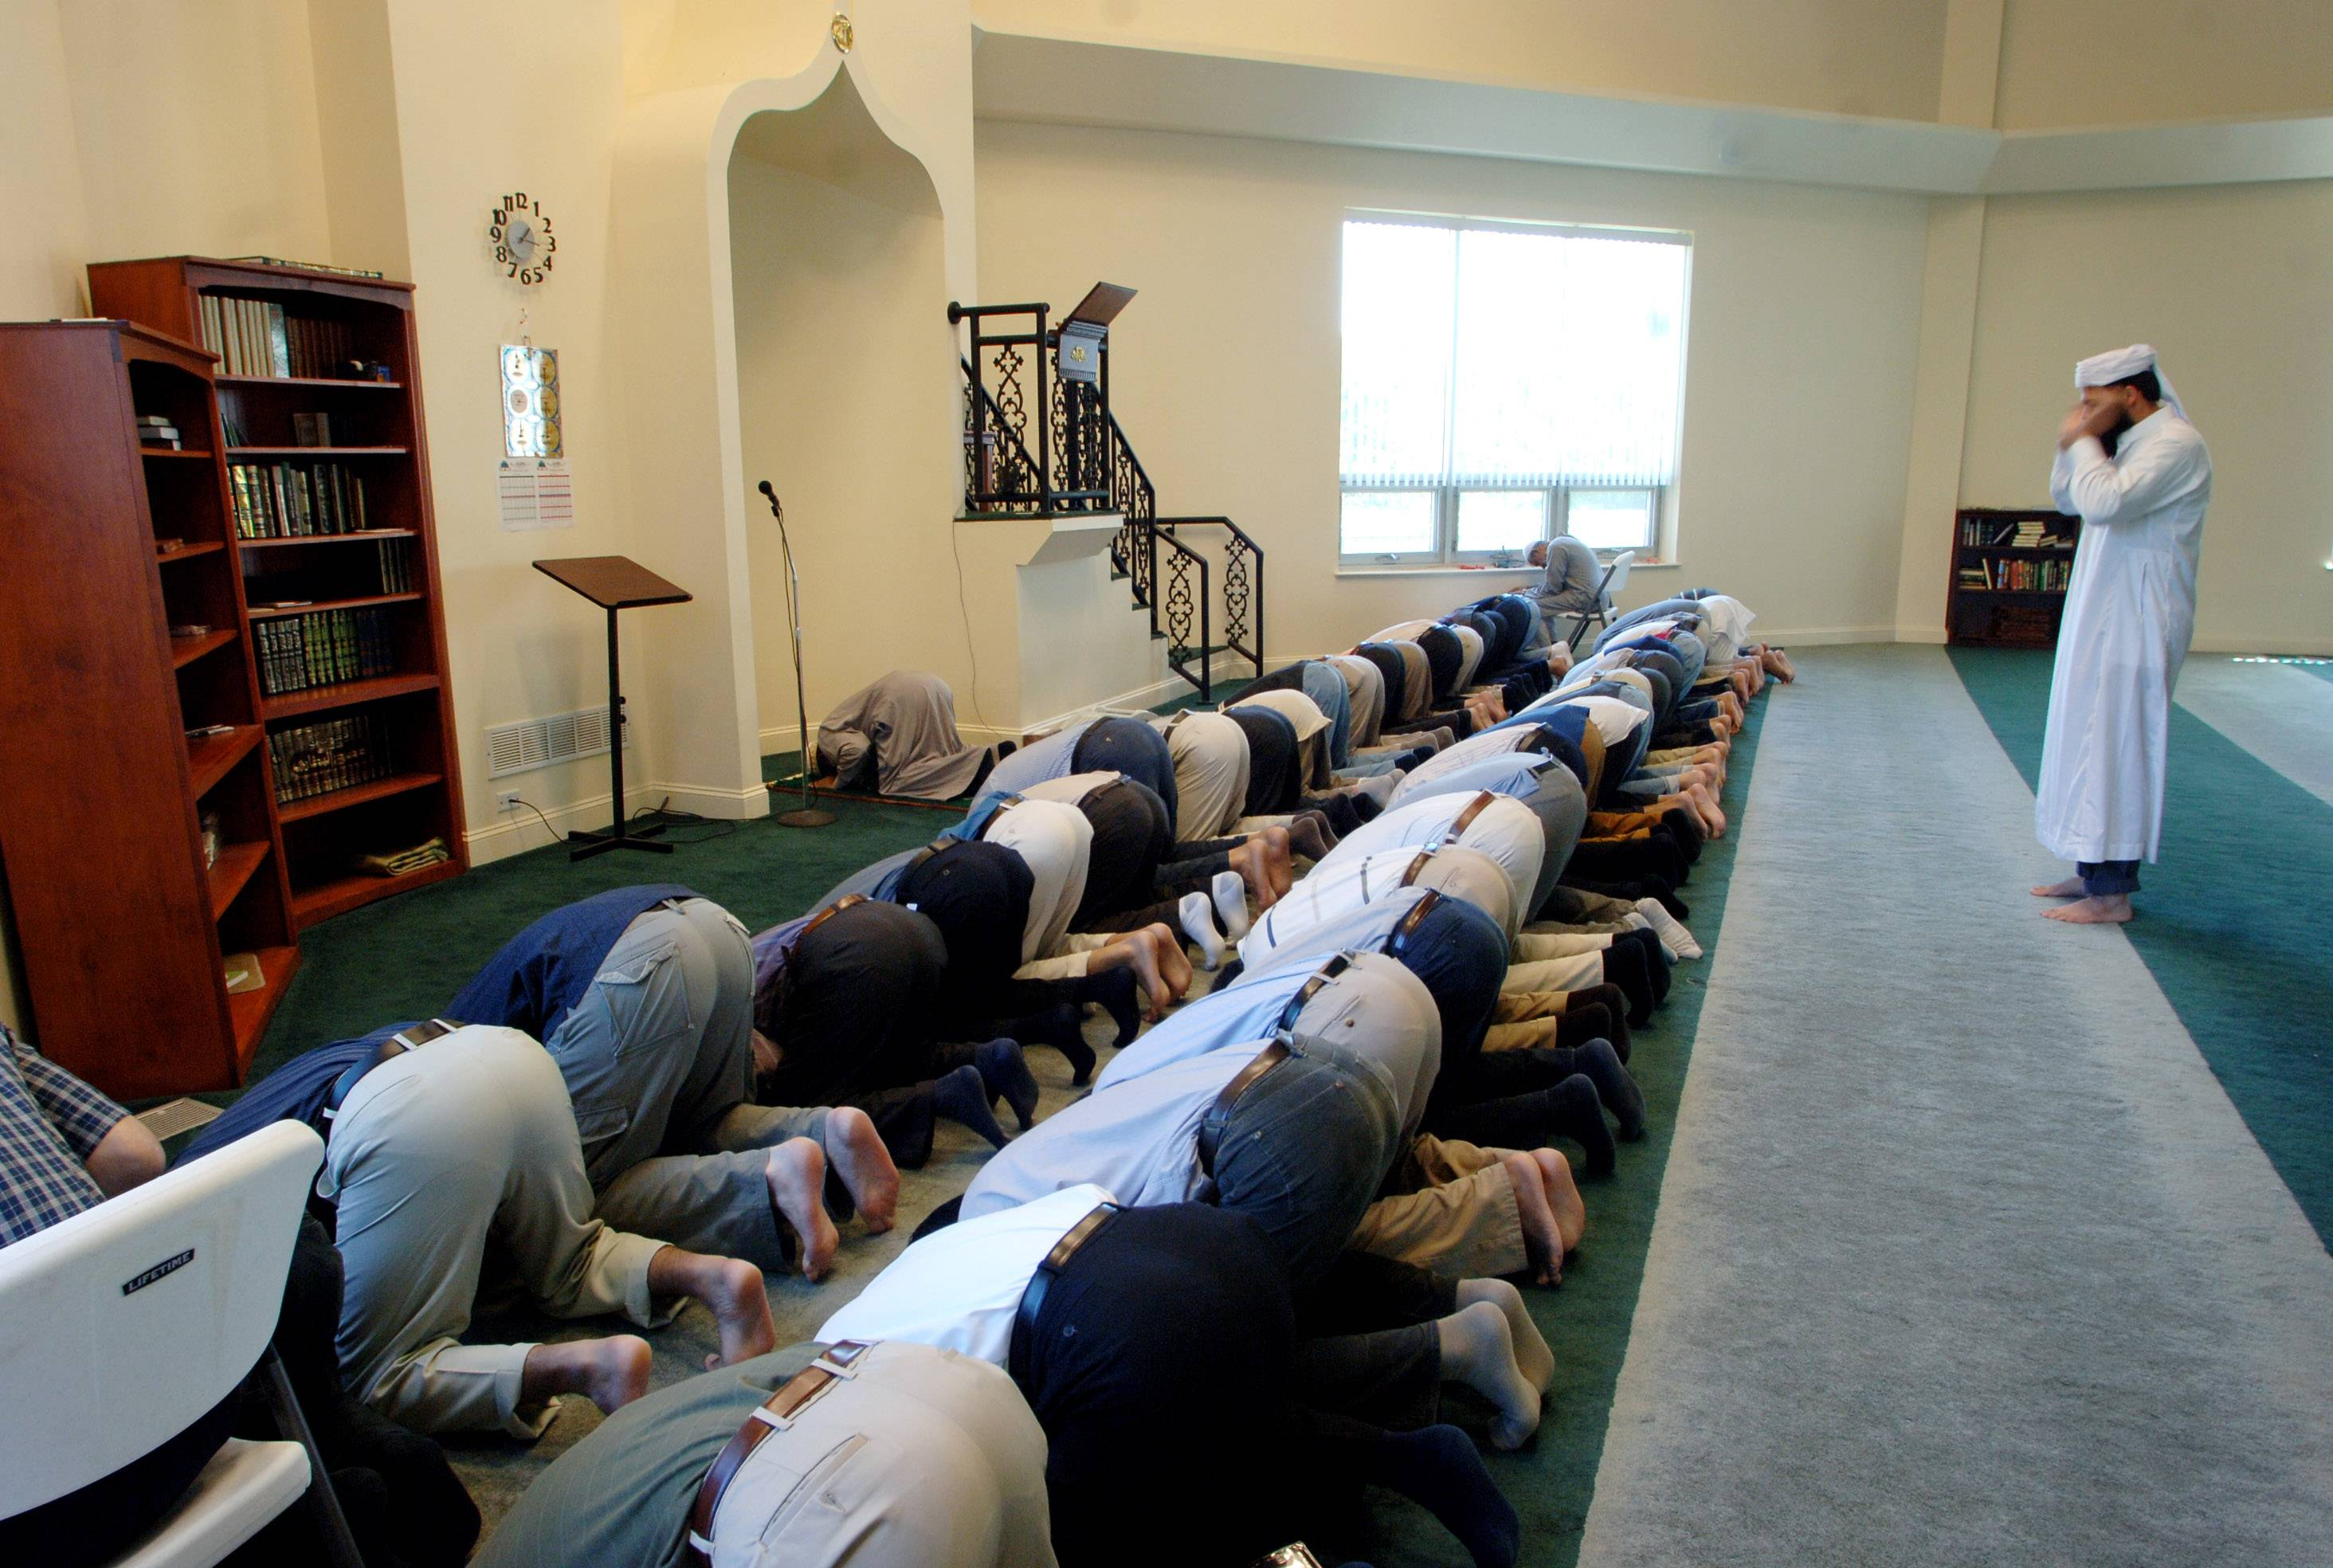 Men participate in prayer at the Islamic Foundation North mosque near Libertyville for the Islamic religious observance of Ramadan.